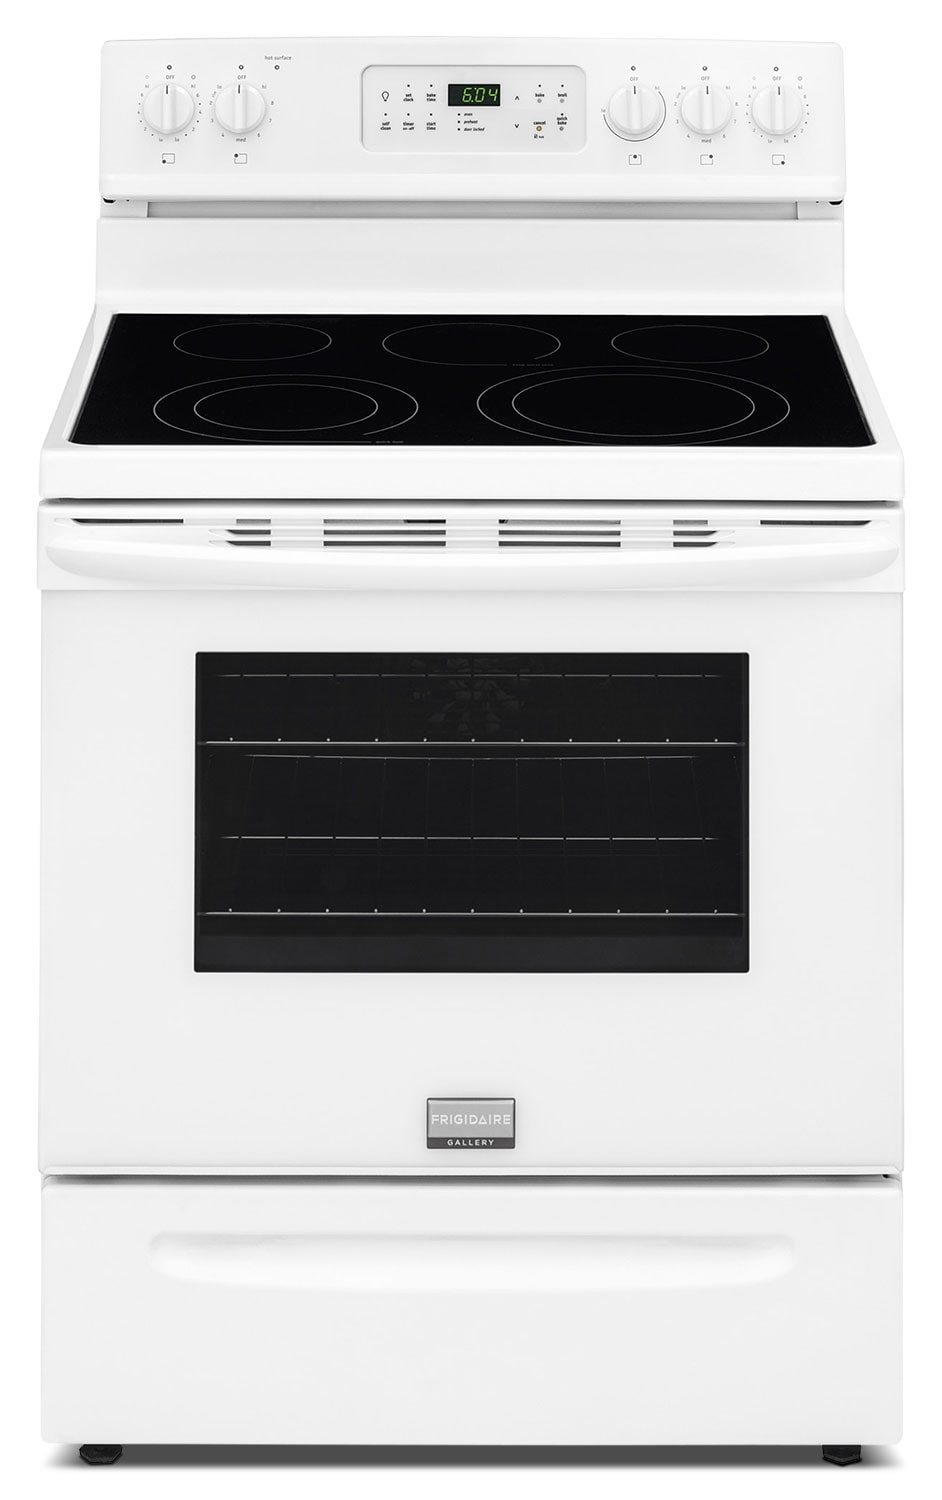 Frigidaire Gallery White Freestanding Electric Convection Range (5.7 Cu. Ft.) - CGEF3035RW